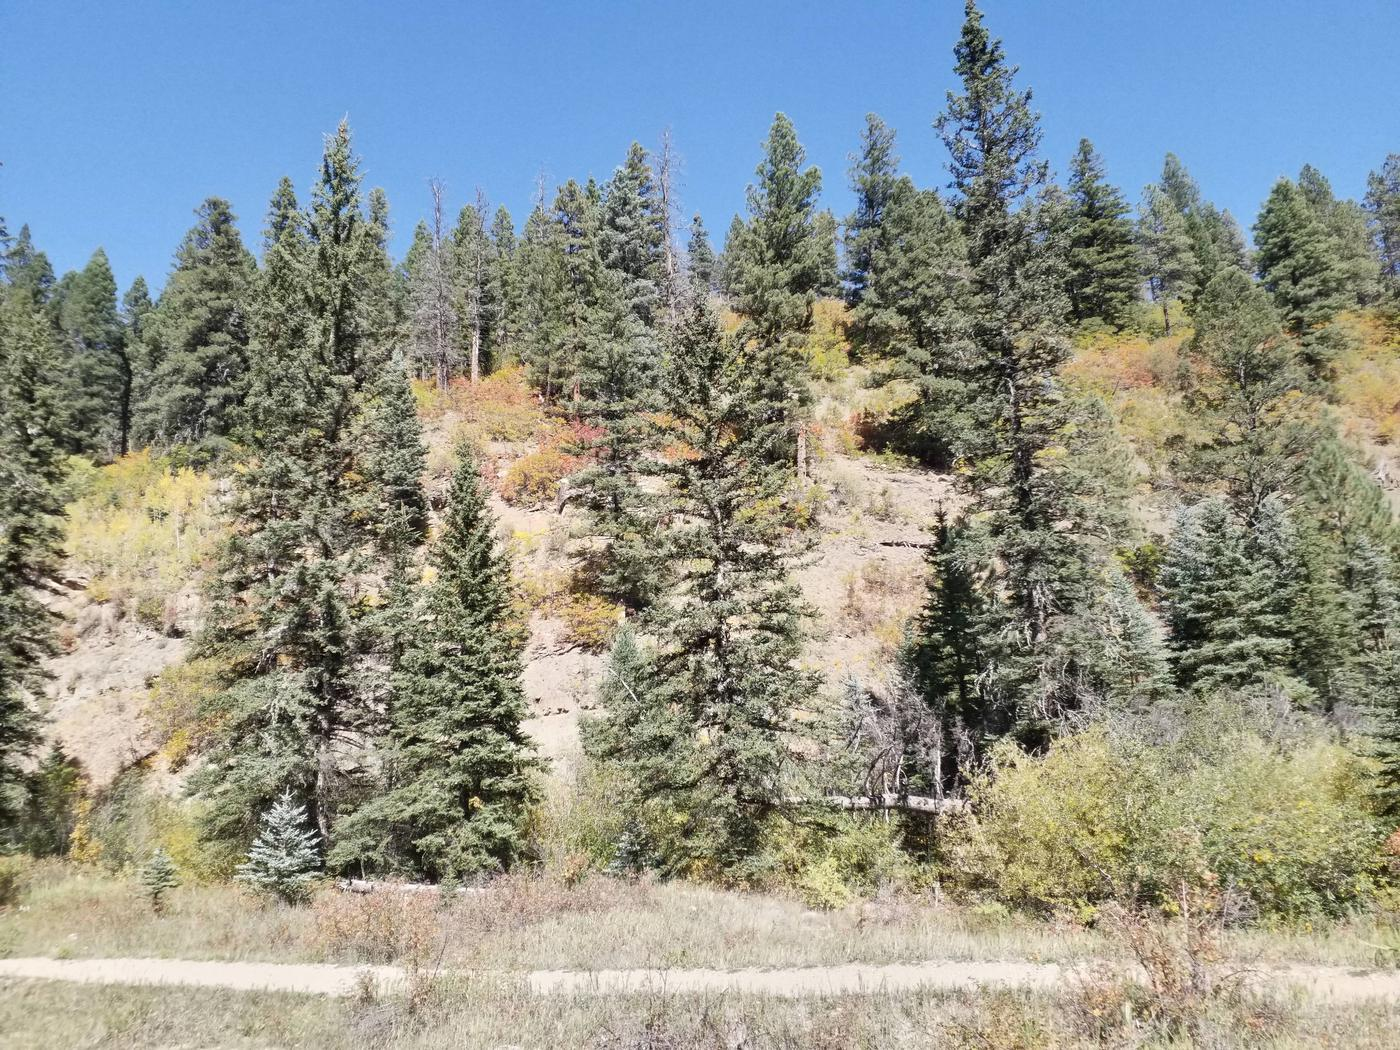 Fall colors change on the hillside with green conifers surrounding it. Hillside with fall foliage.